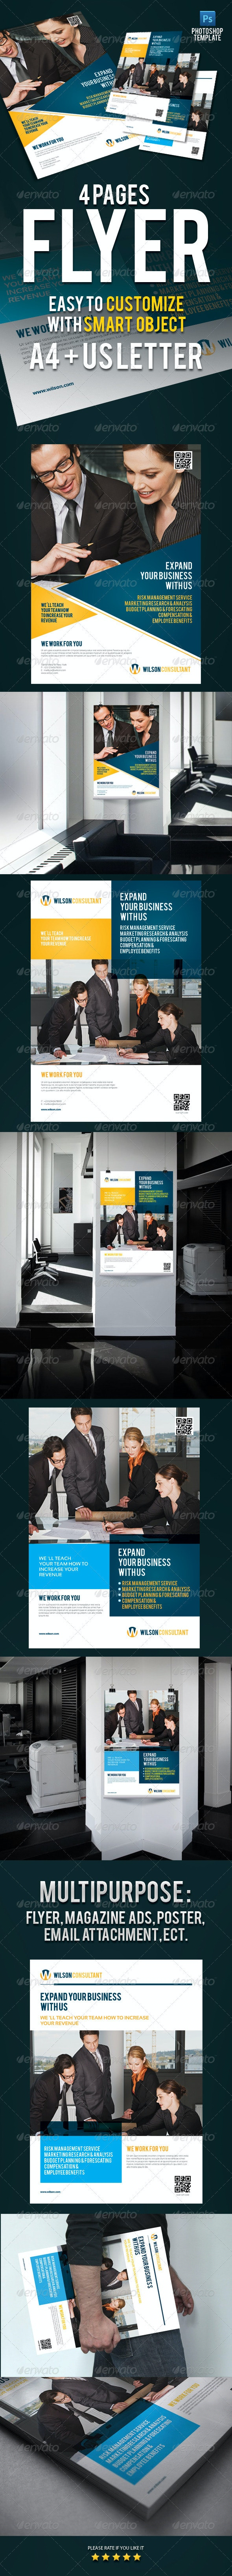 Business Flyer/Ads - Corporate Flyers